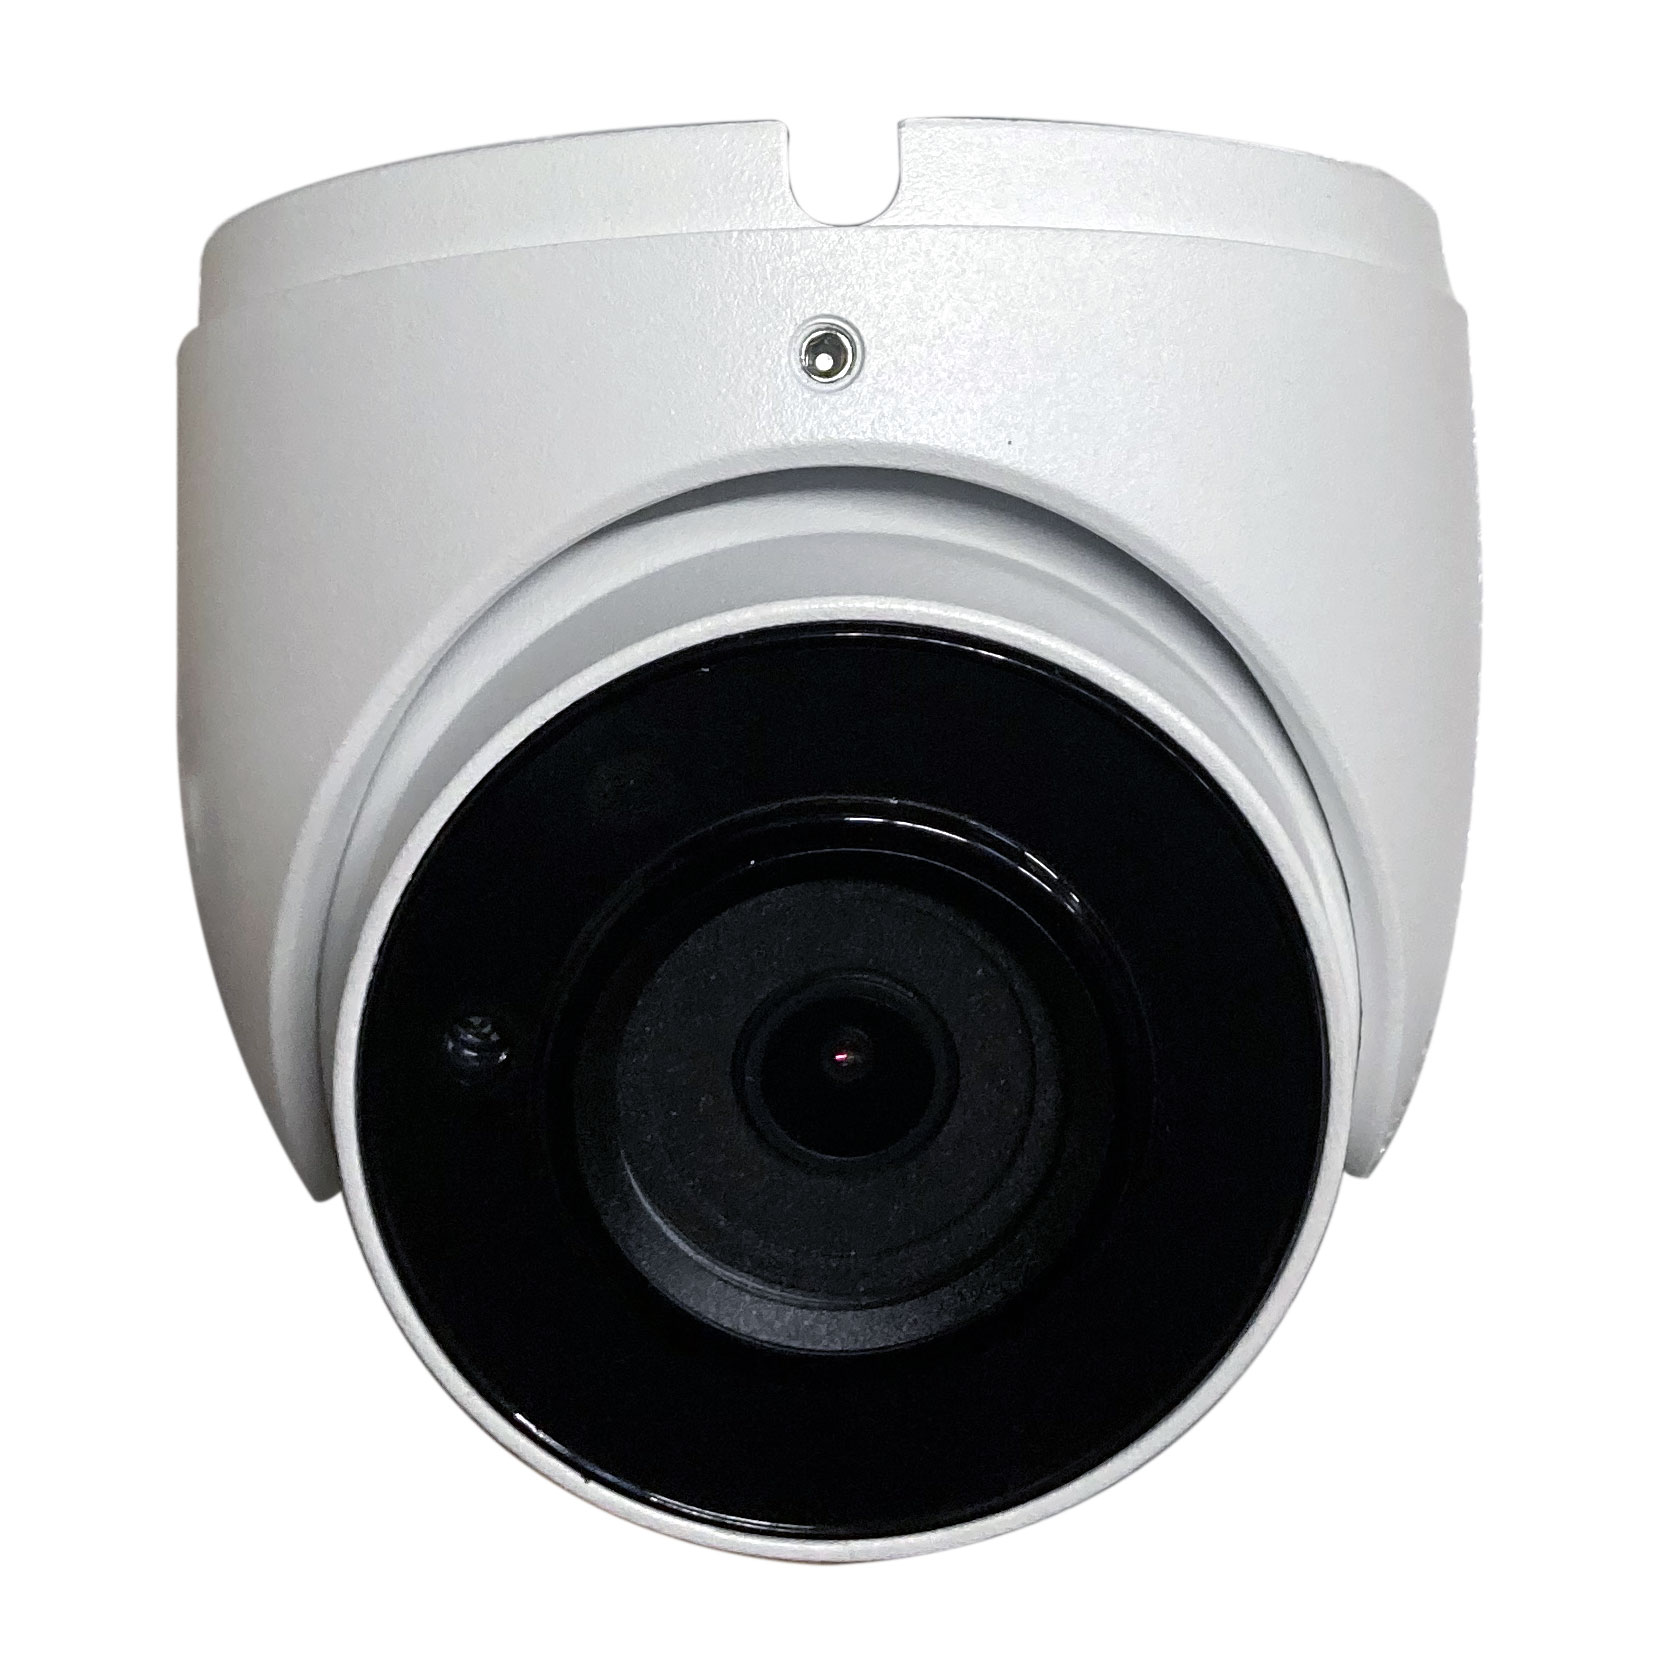 4K IR Eyeball Dome Camera, 4-in-1, 2.8mm Fixed Lens, OS